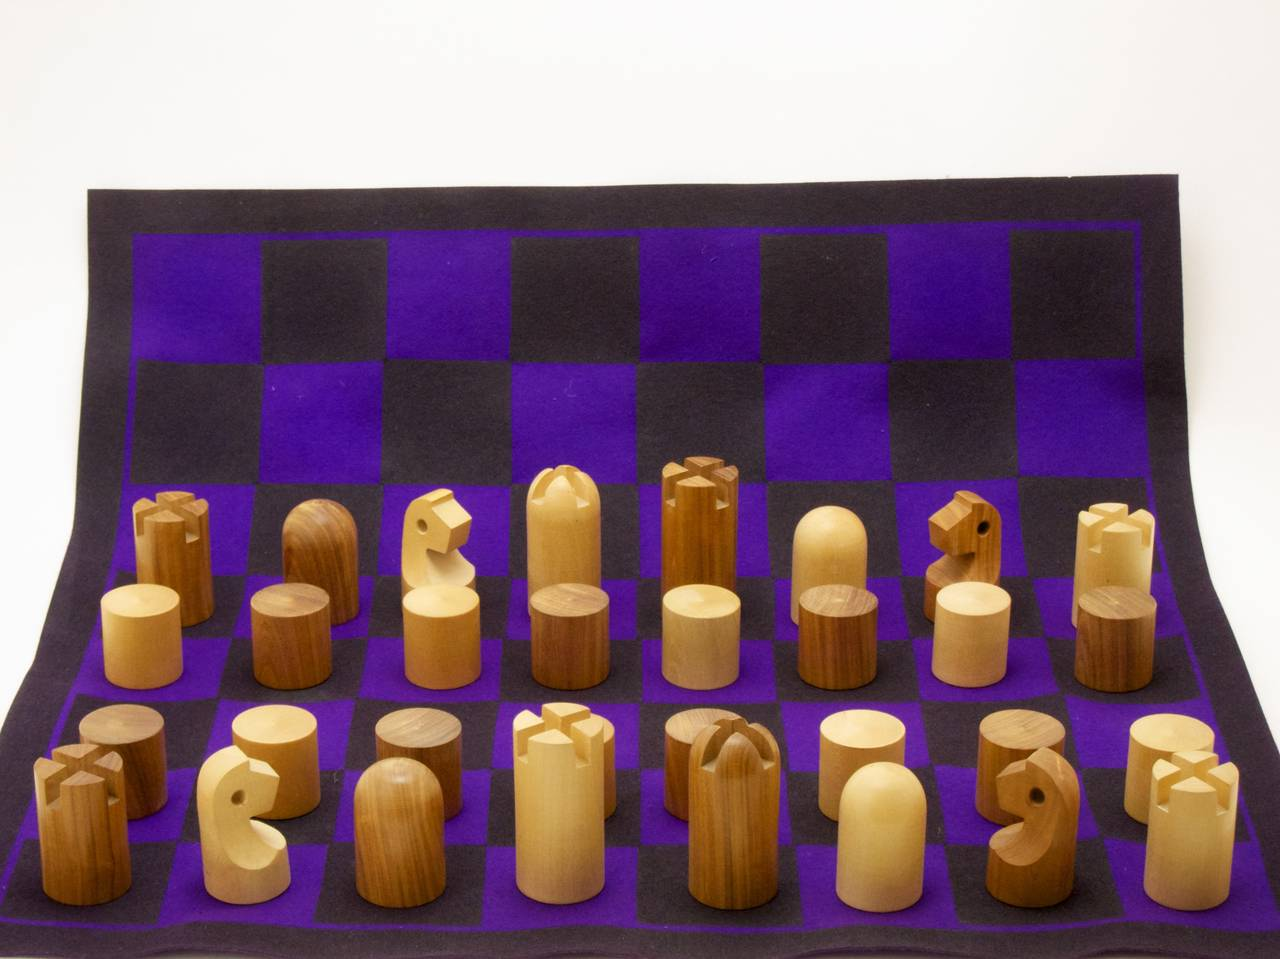 Rare, Minimalist wooden chess set by Carl Auböck comes with a purple felt